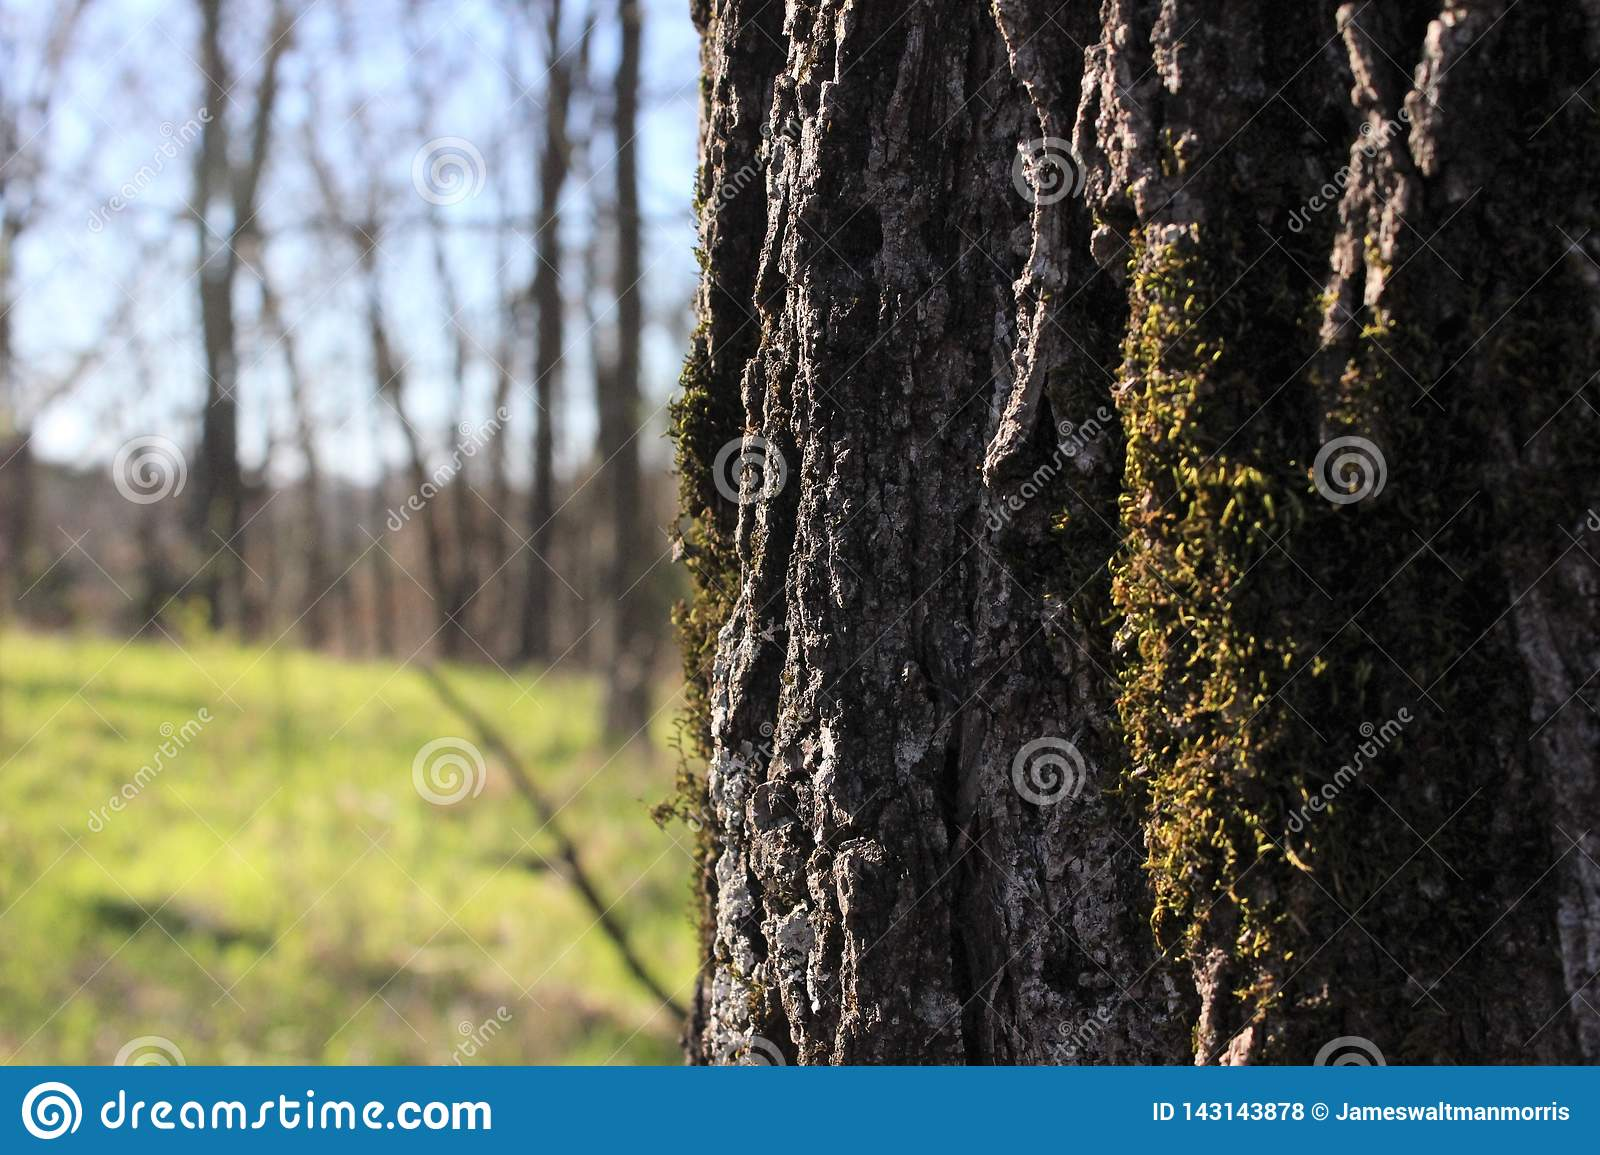 Tree with Moss Growing on Bark